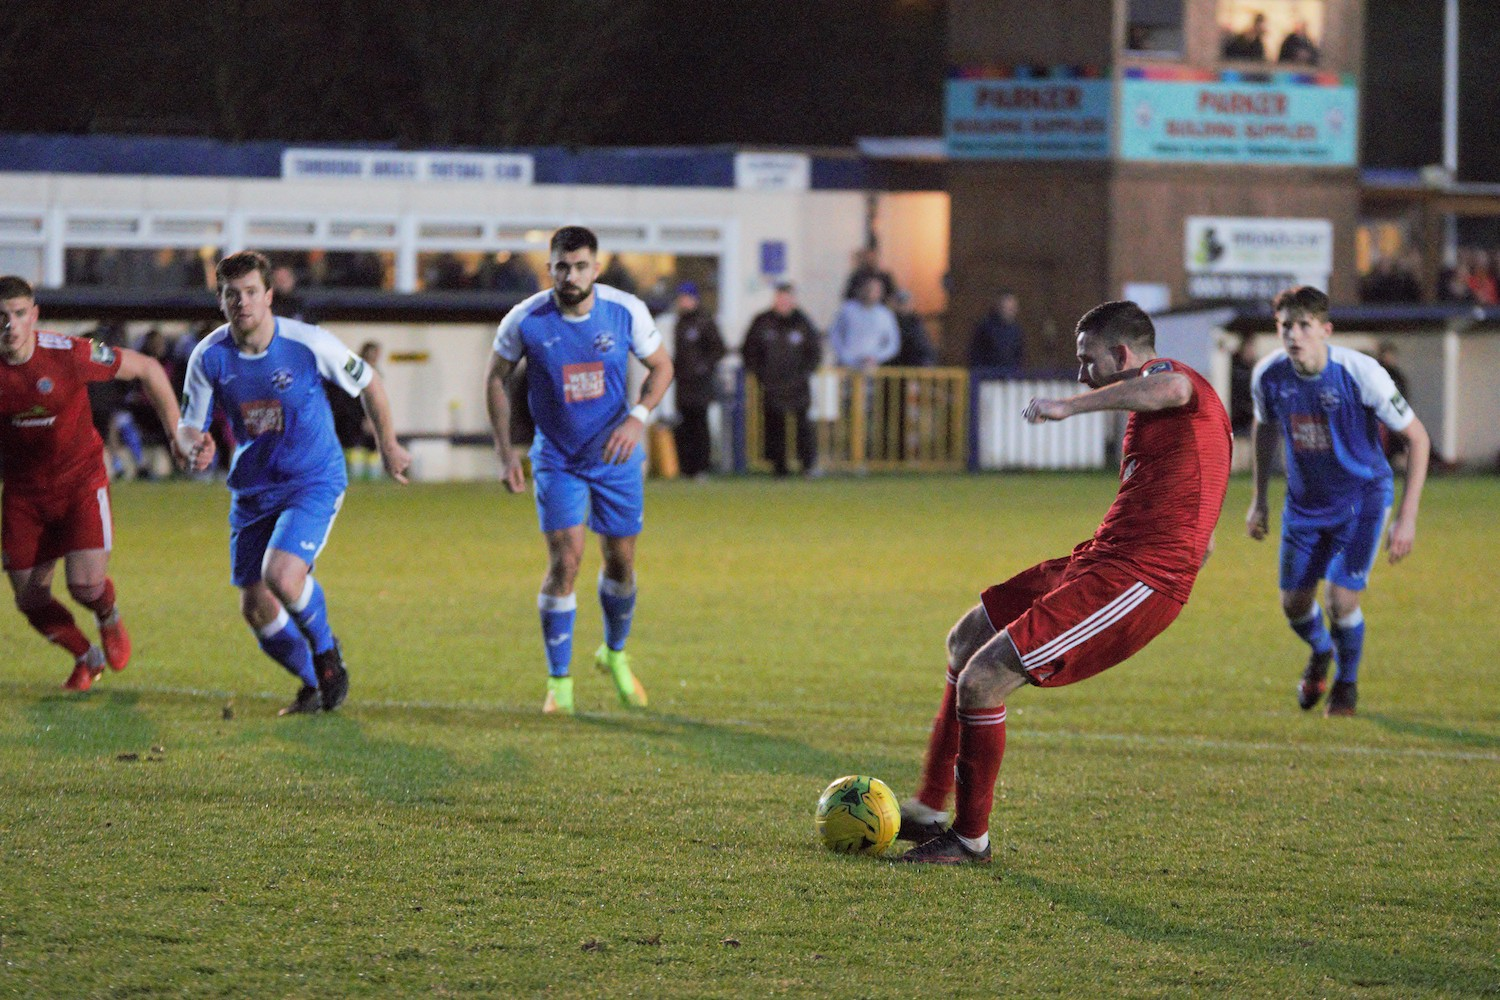 Read the full article - HIGHLIGHTS: Tonbridge Angels 1-2 Worthing [A] – League